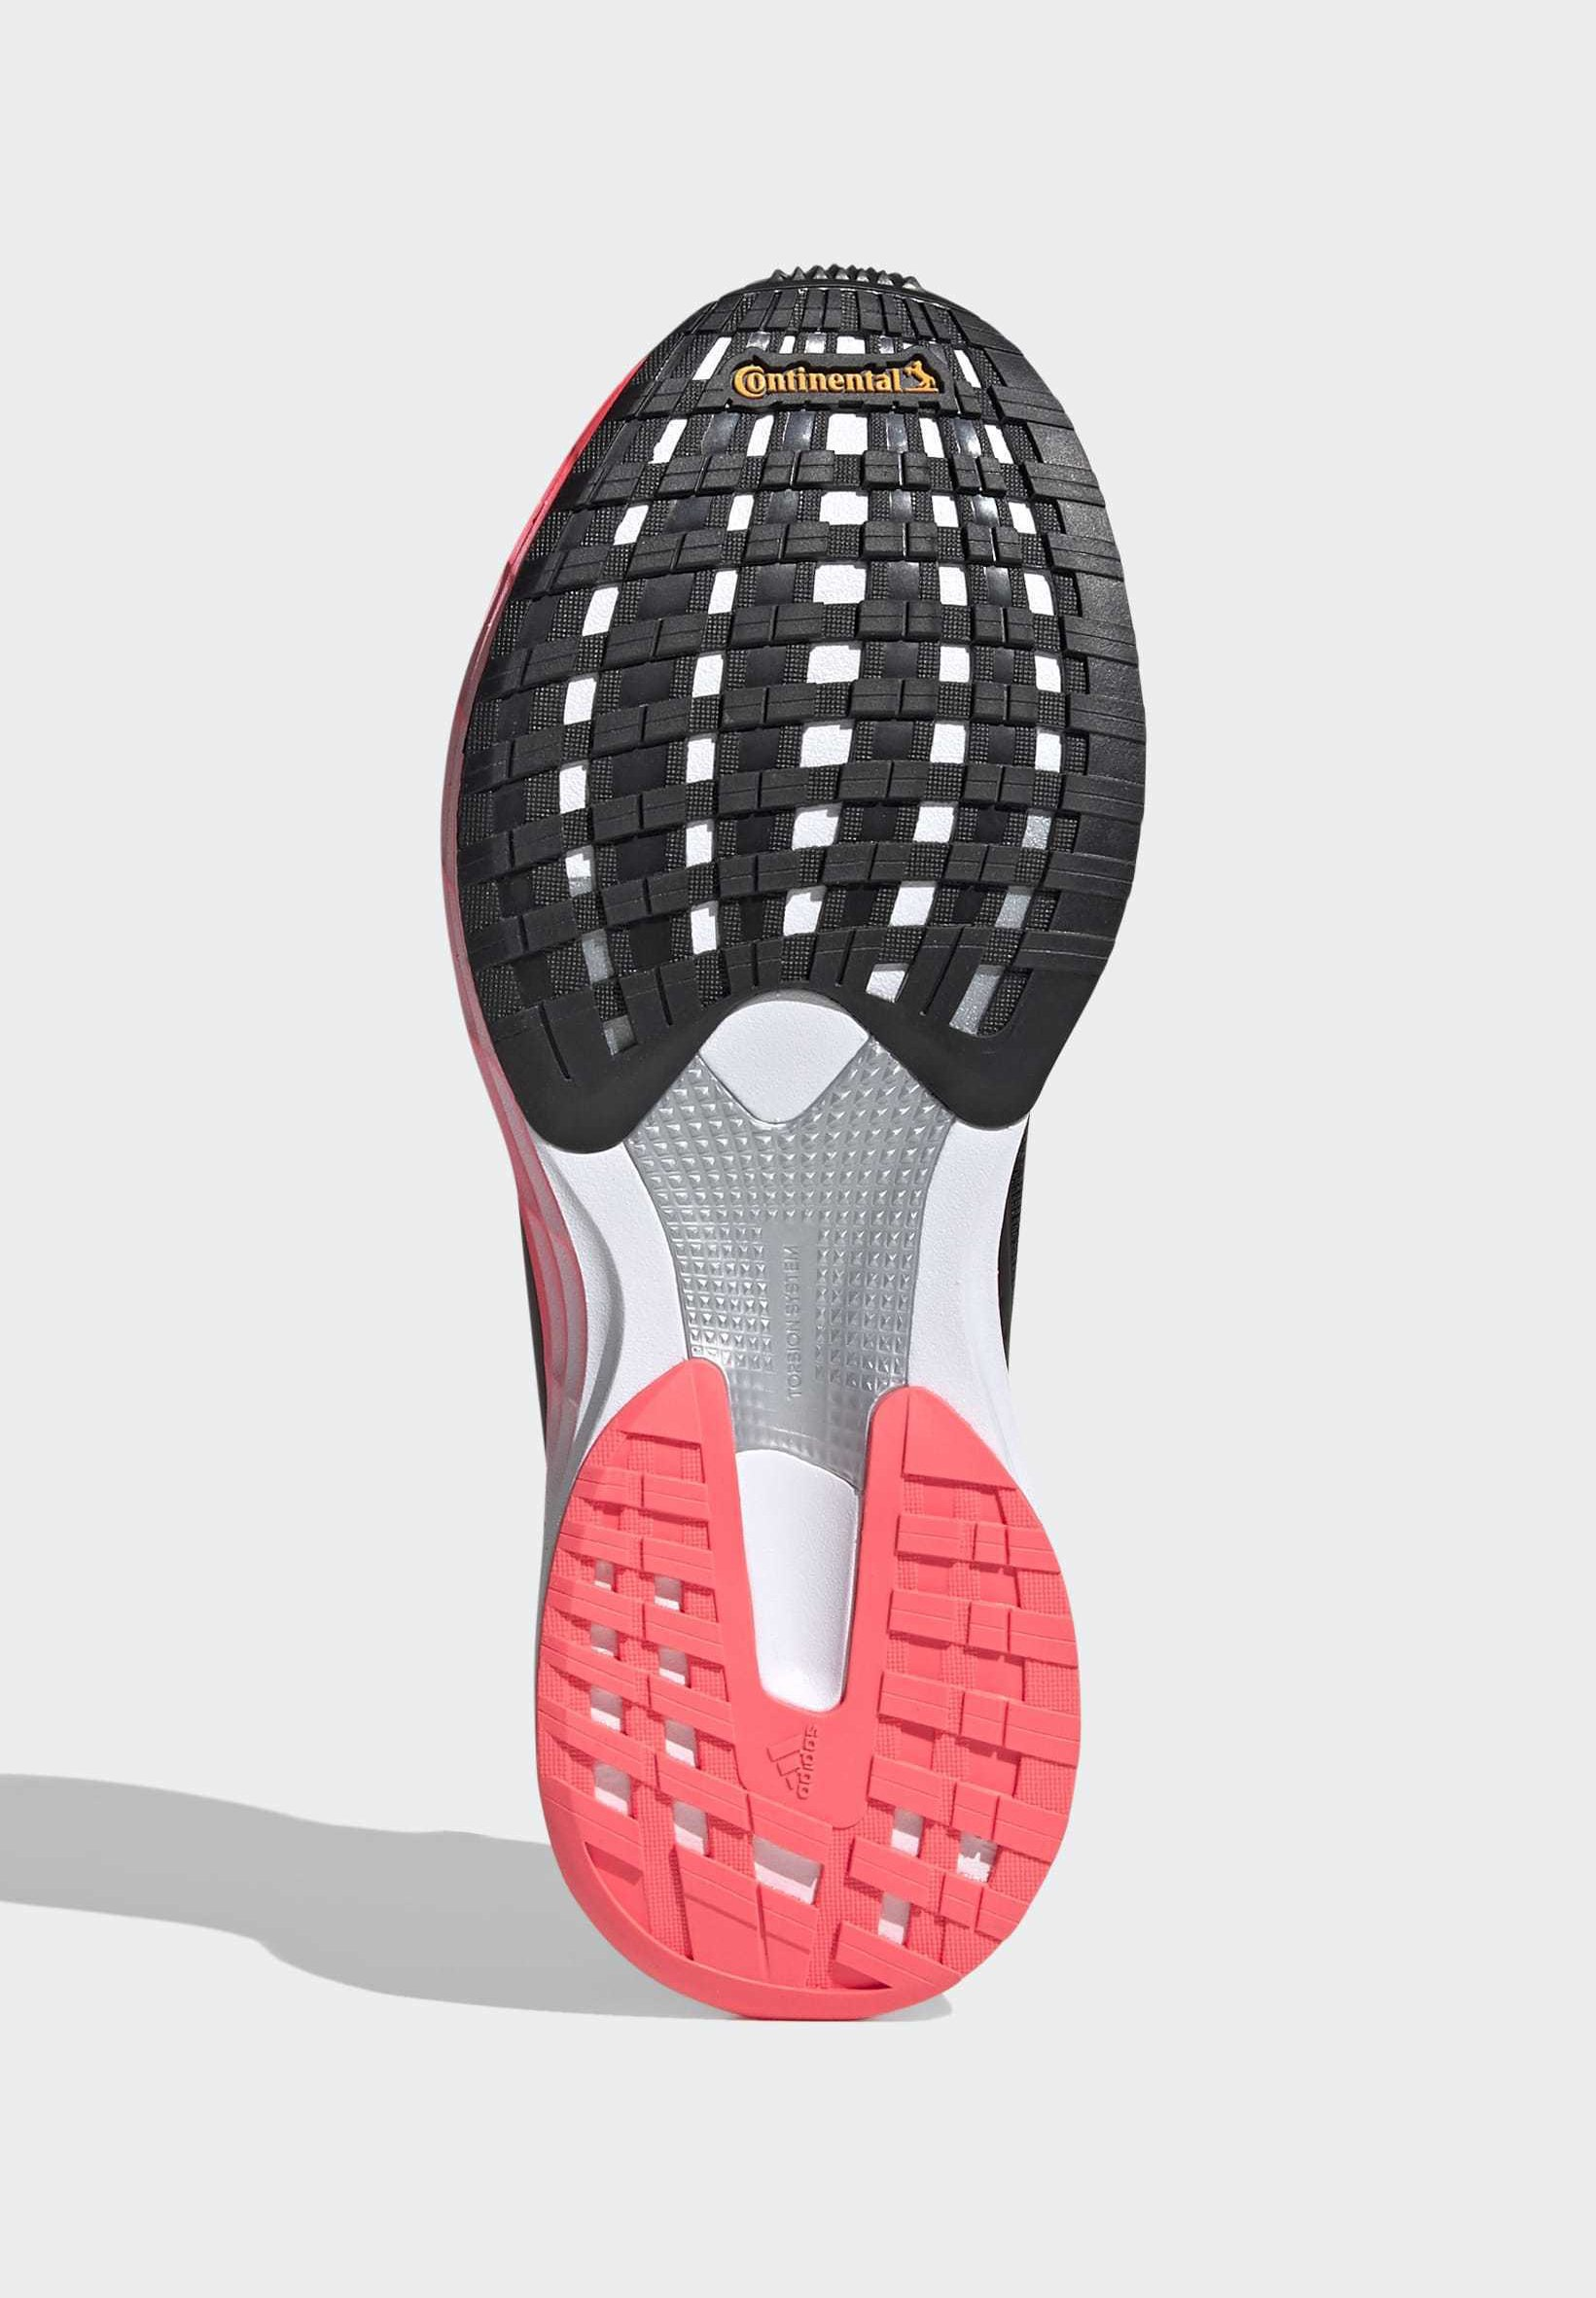 2020 New Cheapest Women's Shoes adidas Performance SL20 SHOES Neutral running shoes black cic2H3DRT vnk8d1iuP